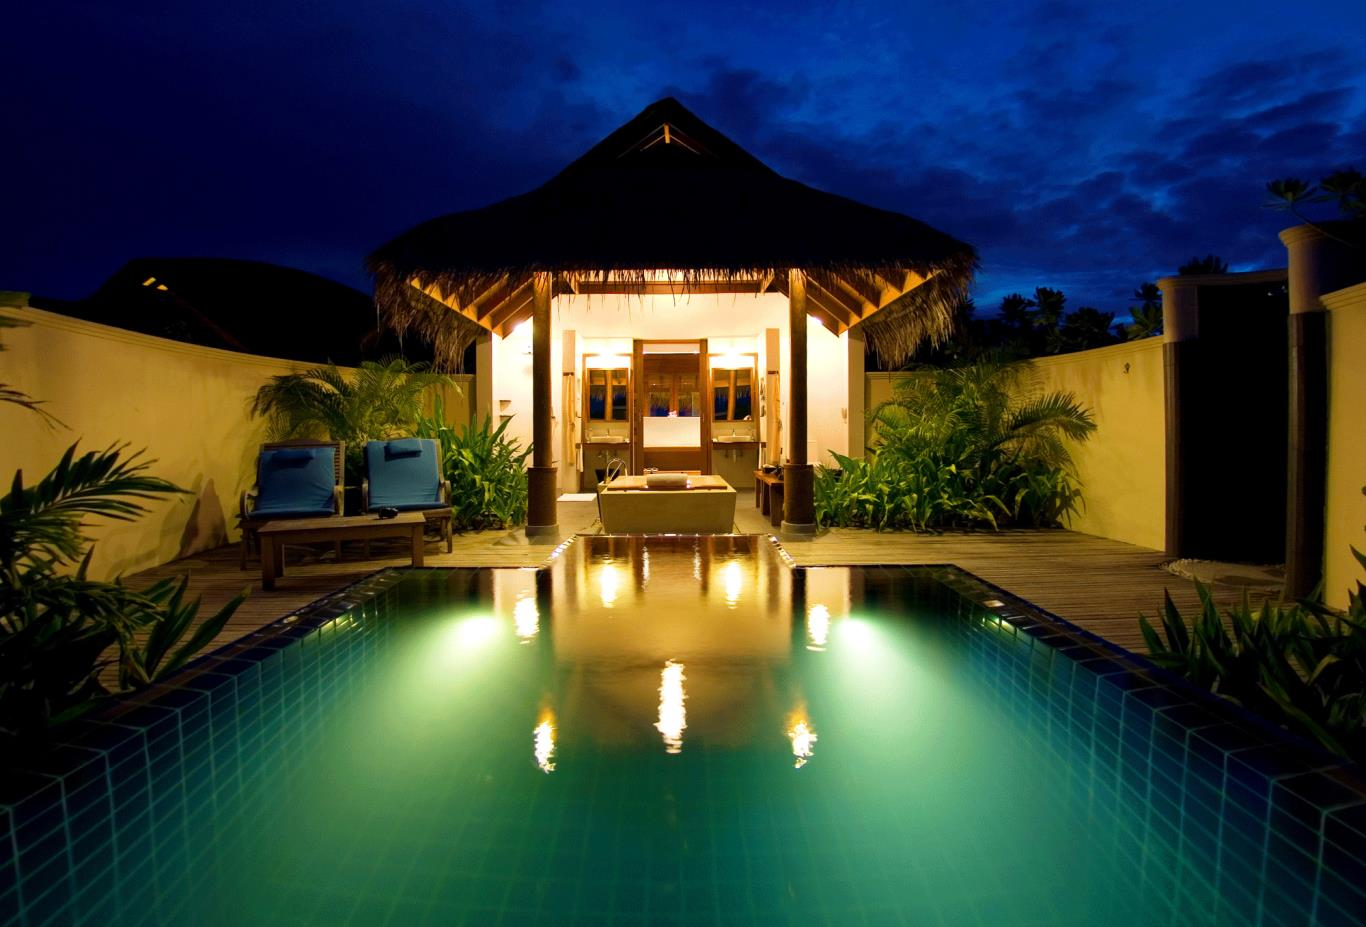 Sunset pool villa